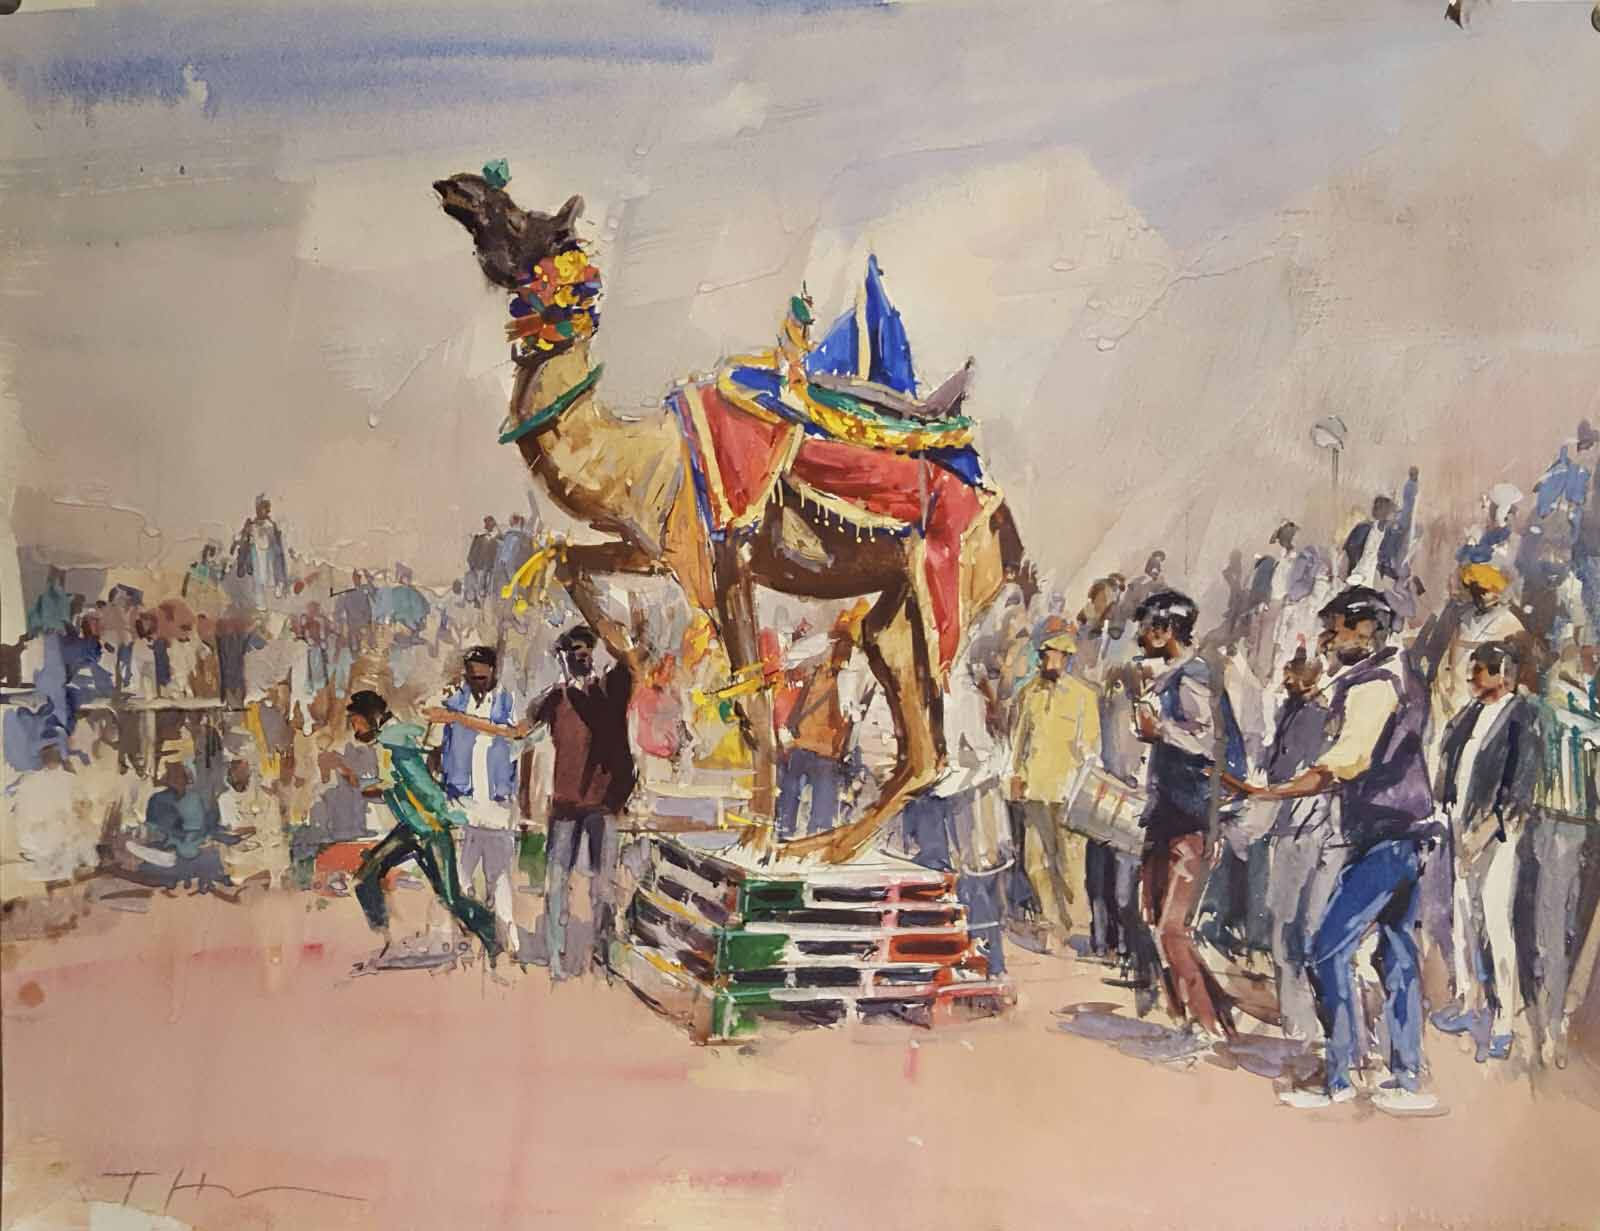 The Camel Dance, Nagaur III